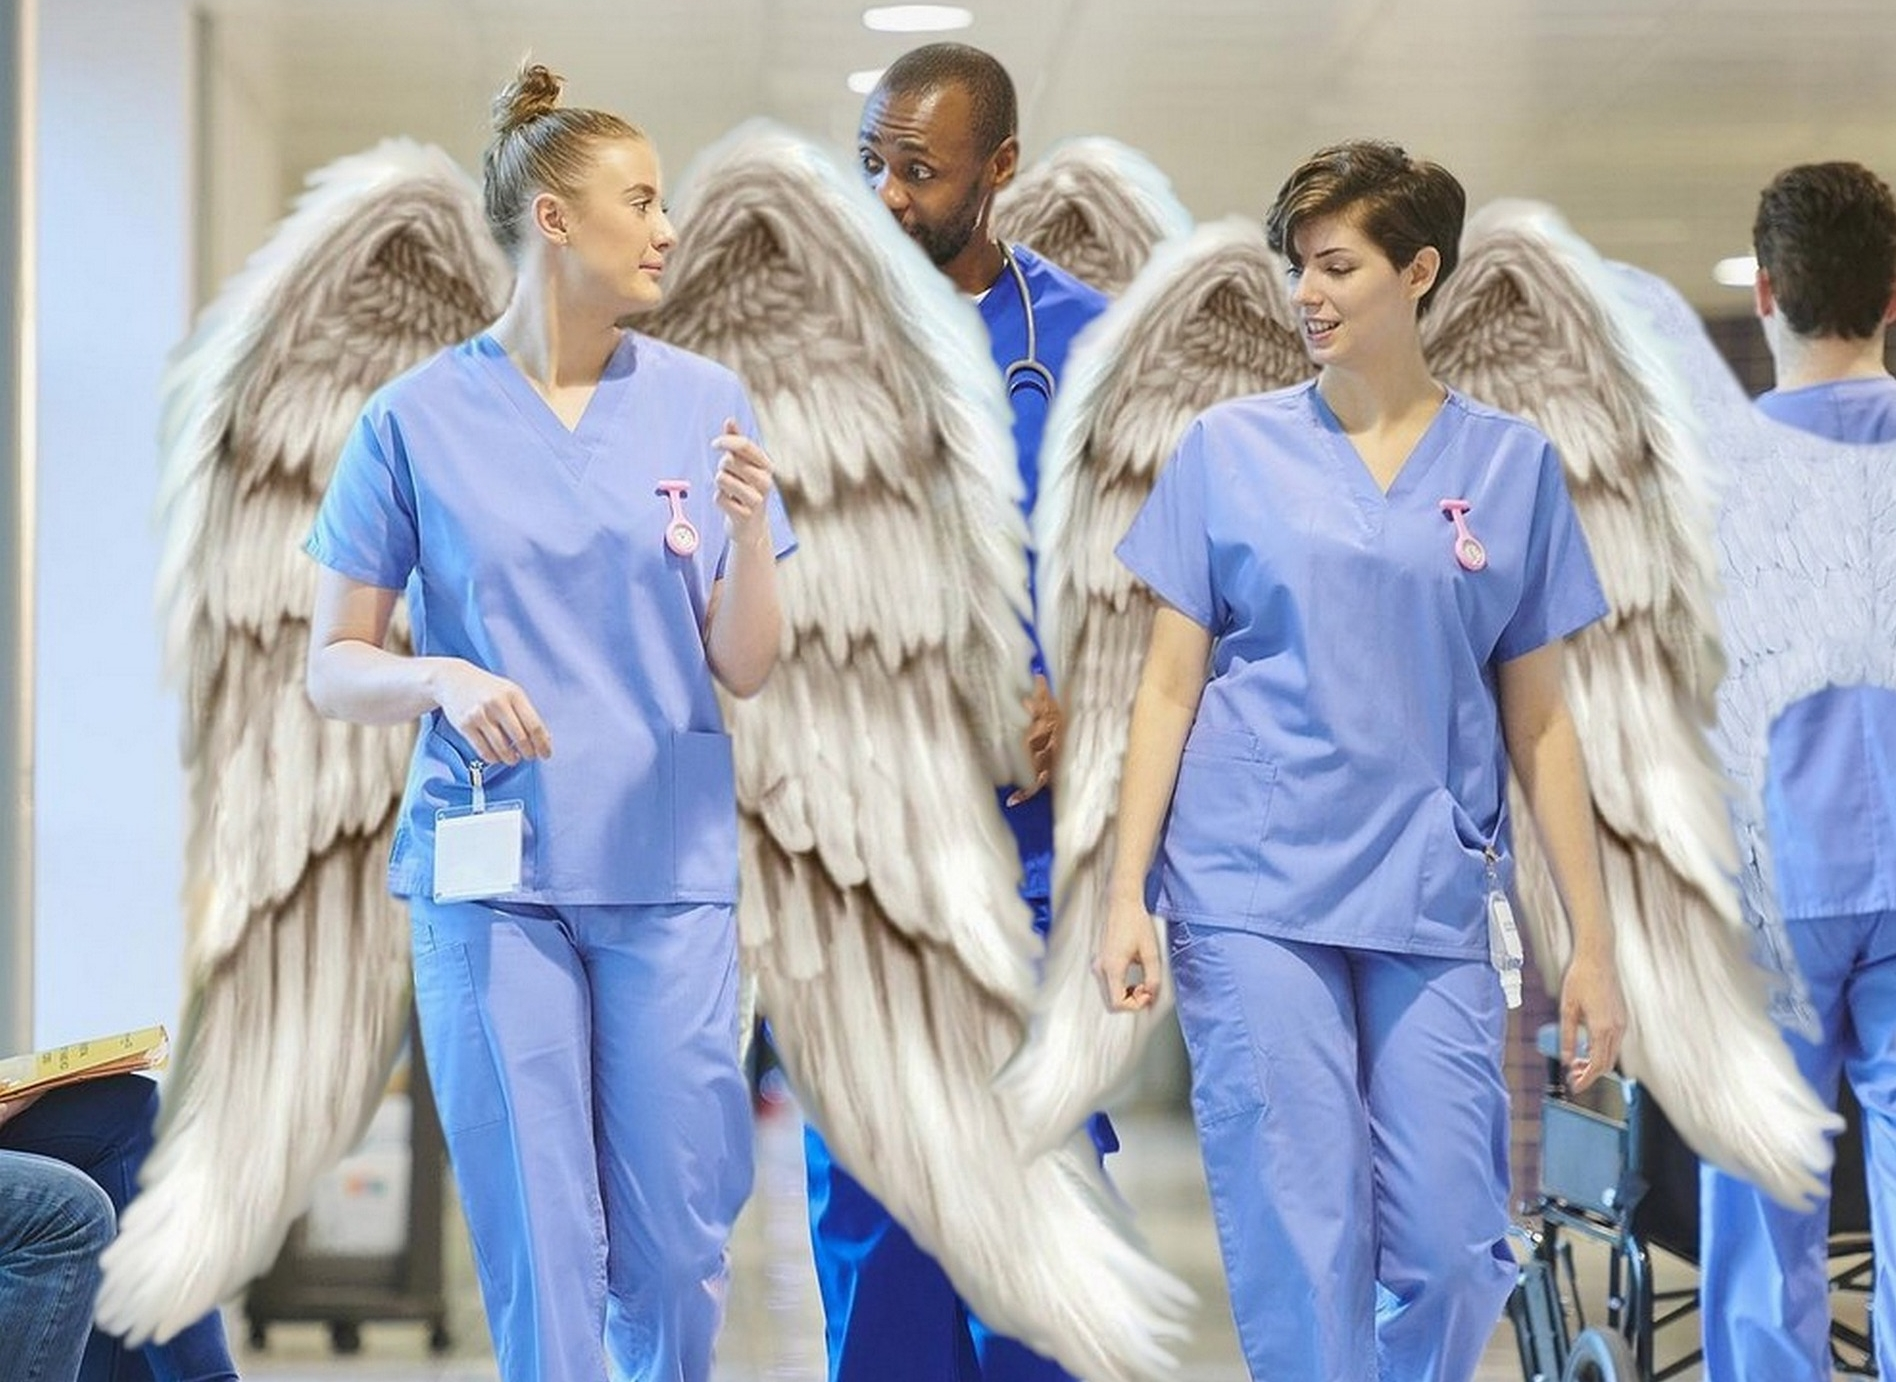 A big THANK YOU to all of the healthcare workers